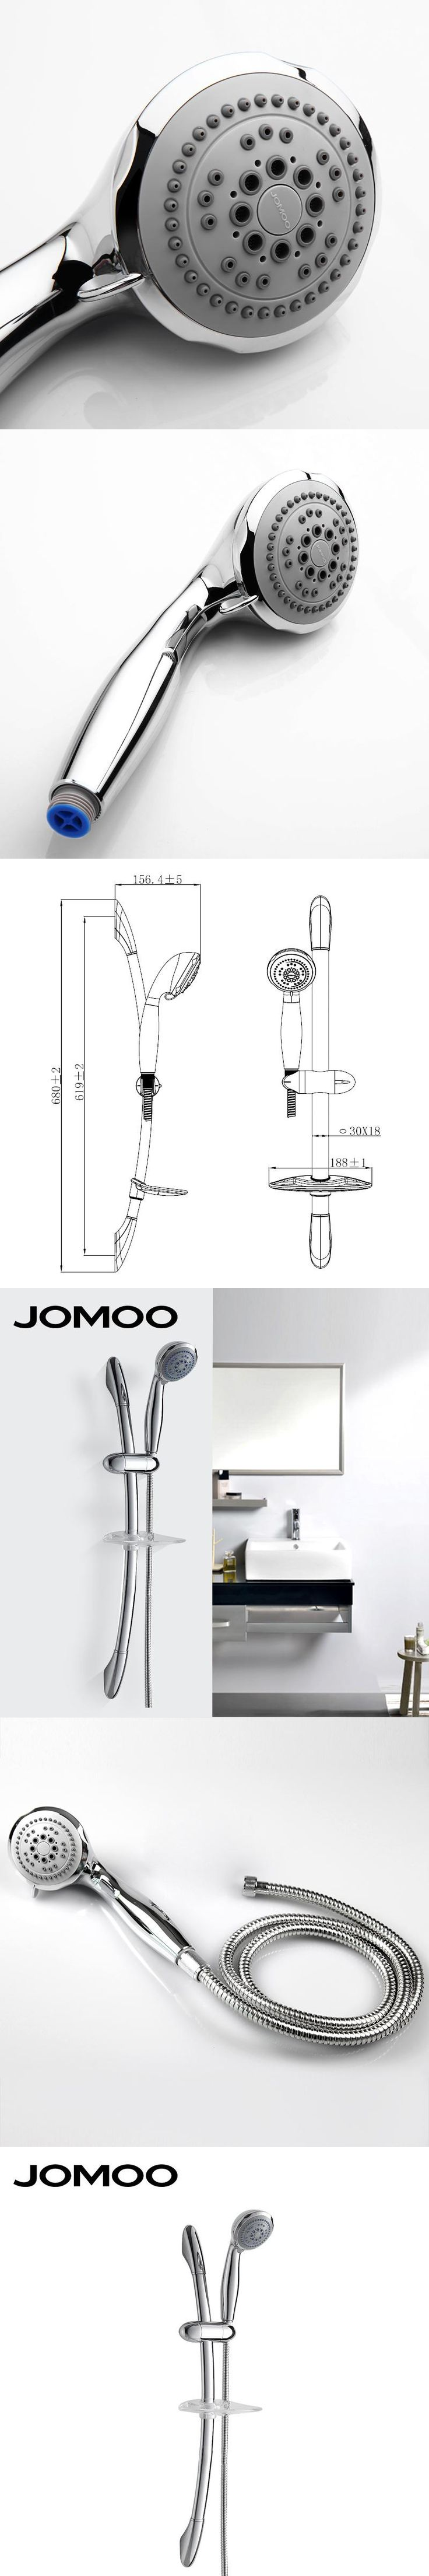 JOMOO Bathroom Shower Set Bath Shower Head With Slider Bar And Hose And Soap Holder Wall Mount Round ABS Hand Shower Chrome